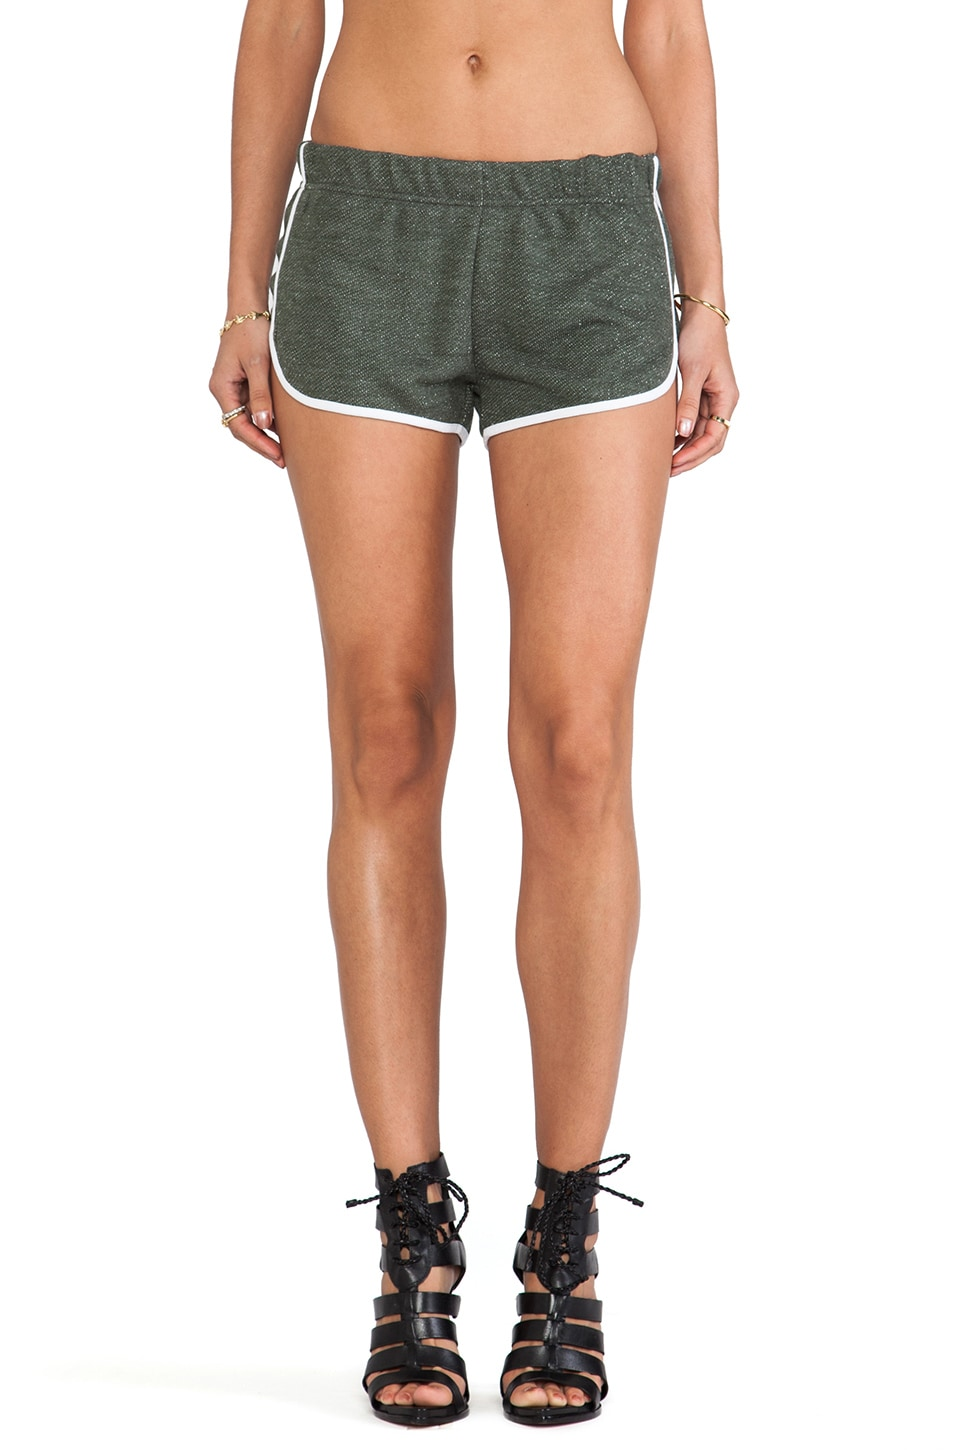 One Teaspoon Wagoneer Running Shorts in Black